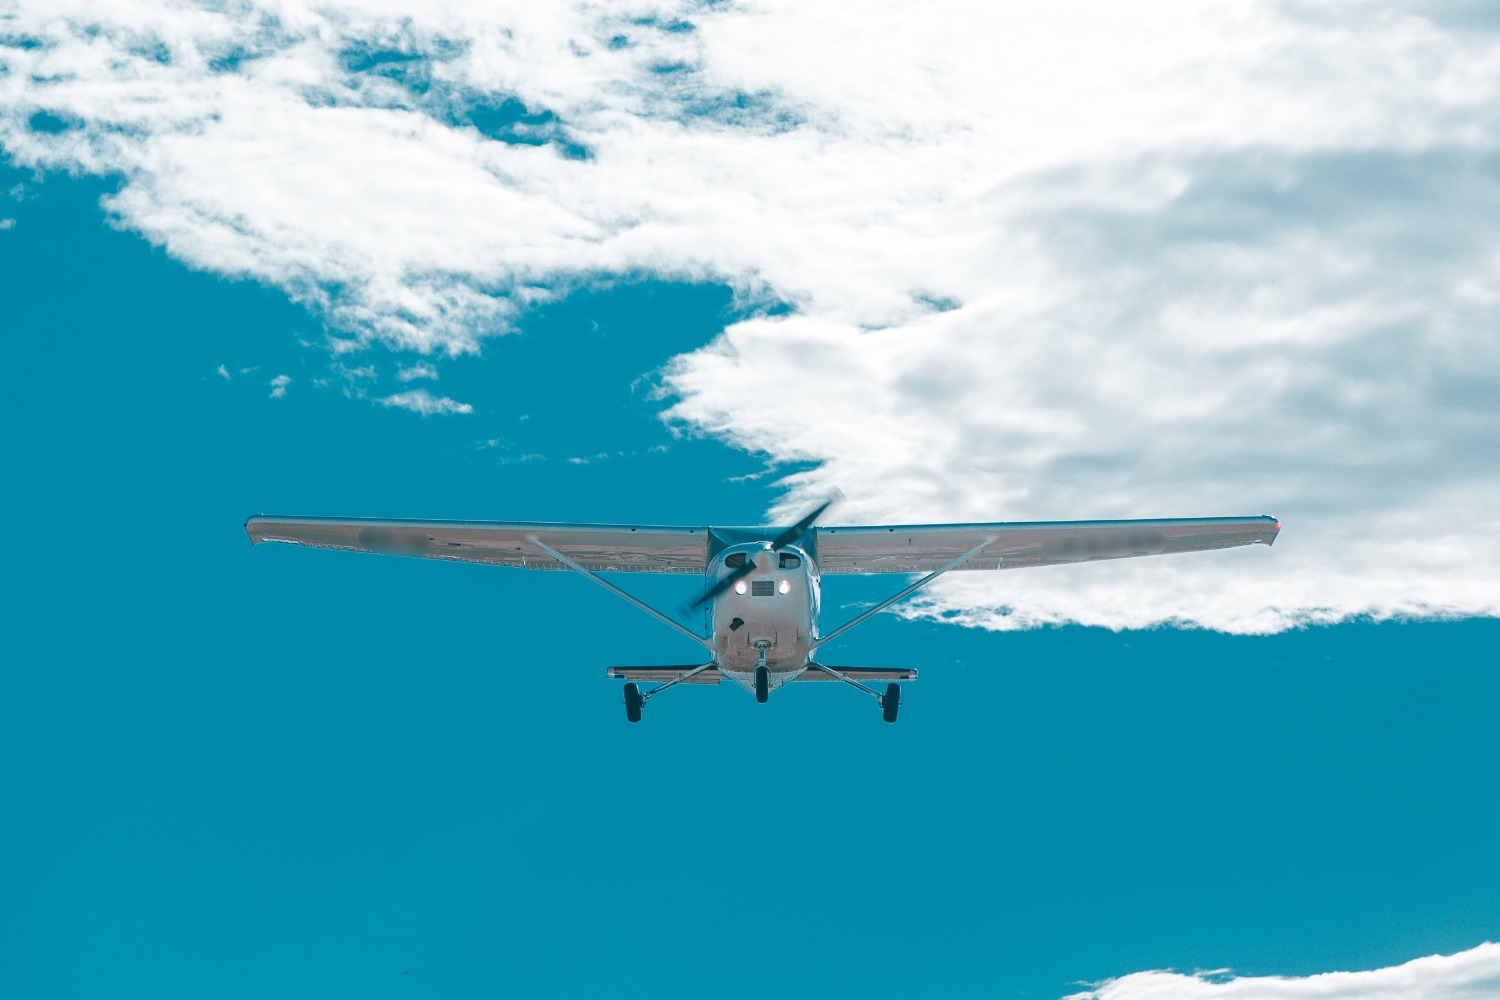 Fly over Cessna